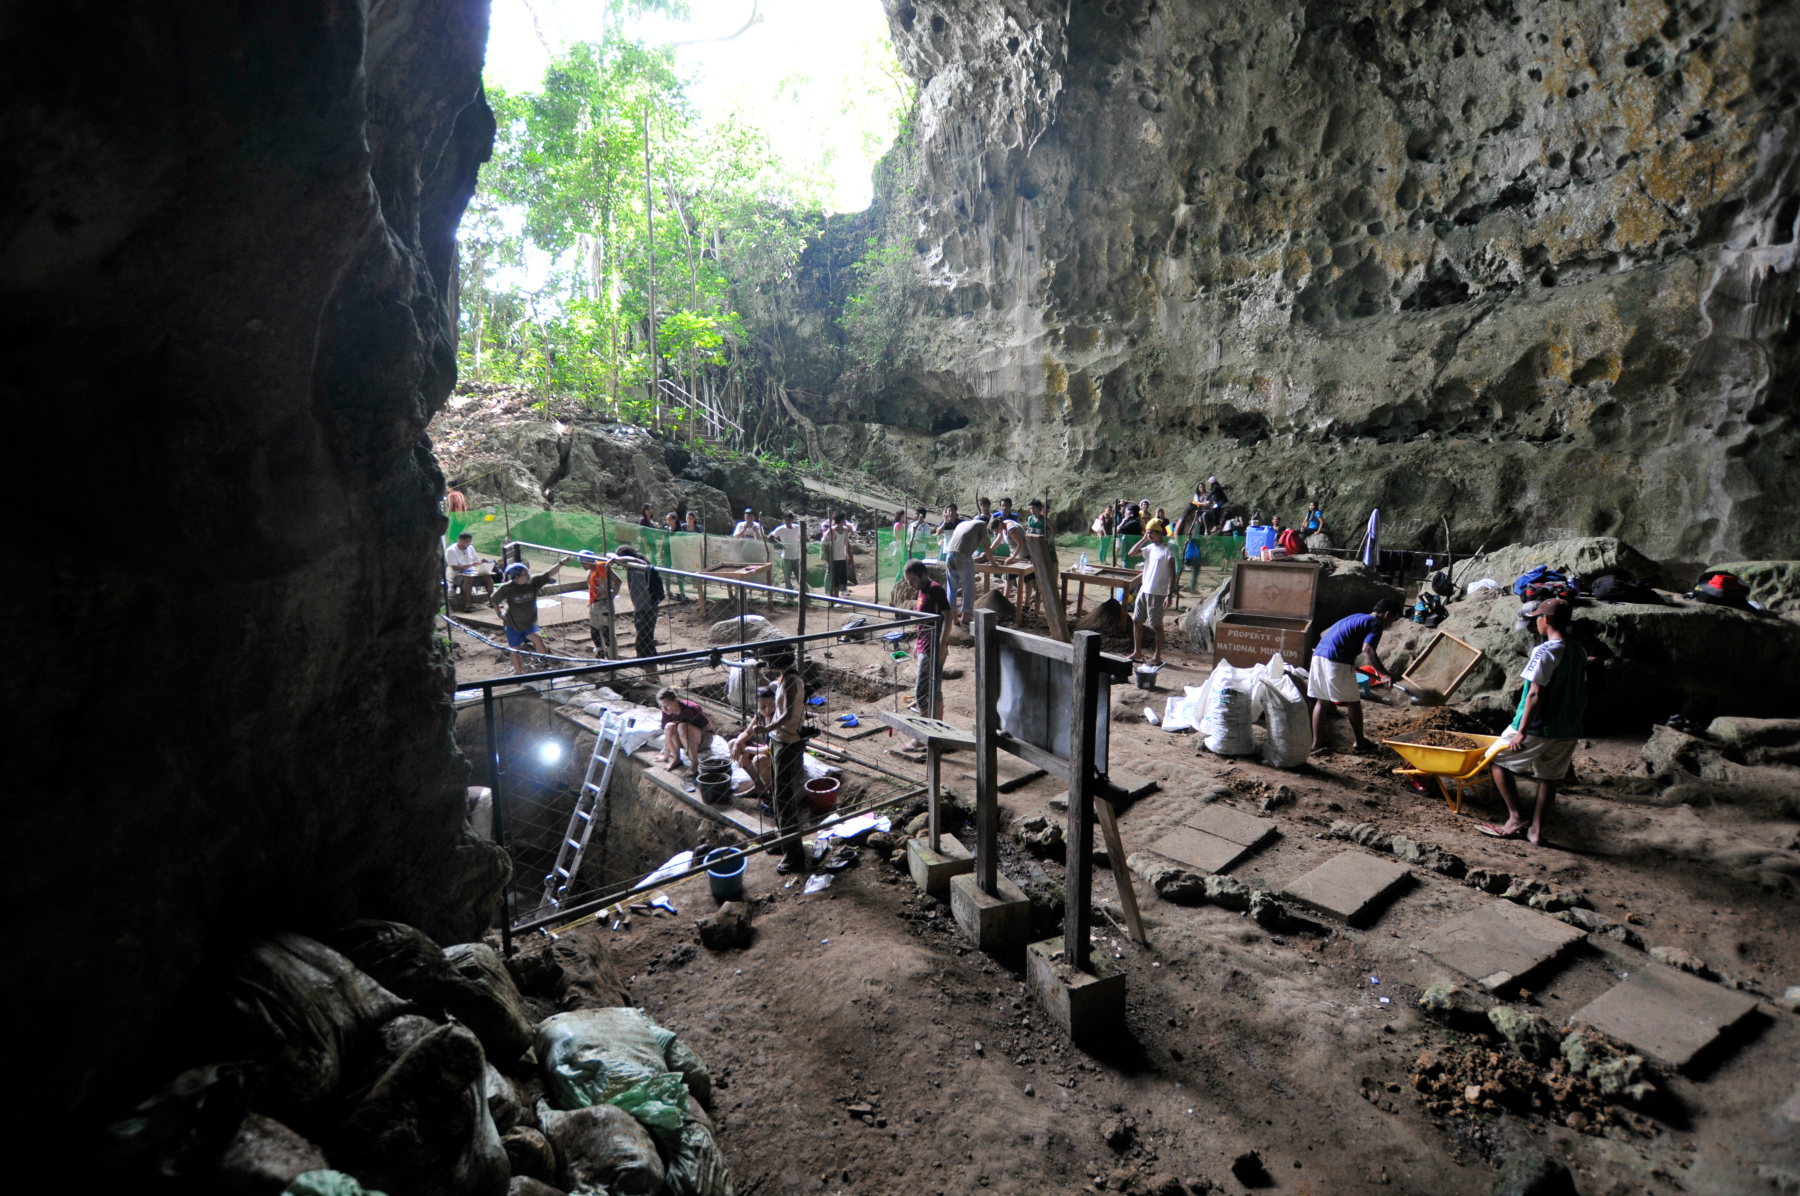 Fossil excavation site in Callao Cave in northern Luzon in the Philippines CALLAO CAVE ARCHAEOLOGY PROJECT